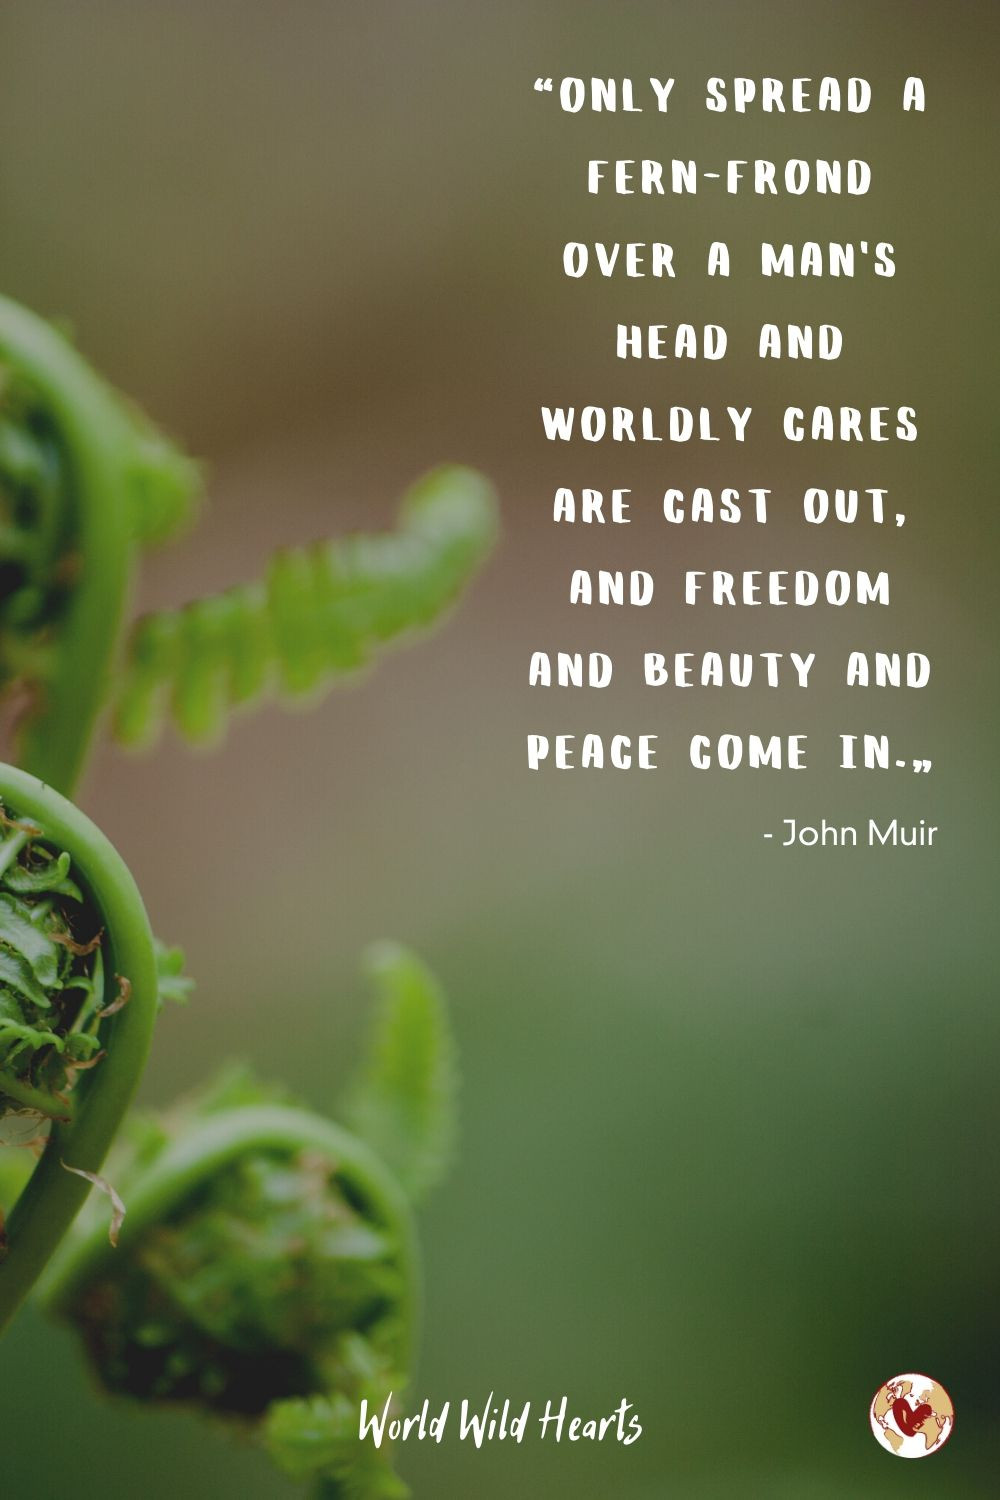 John Muir quote on nature